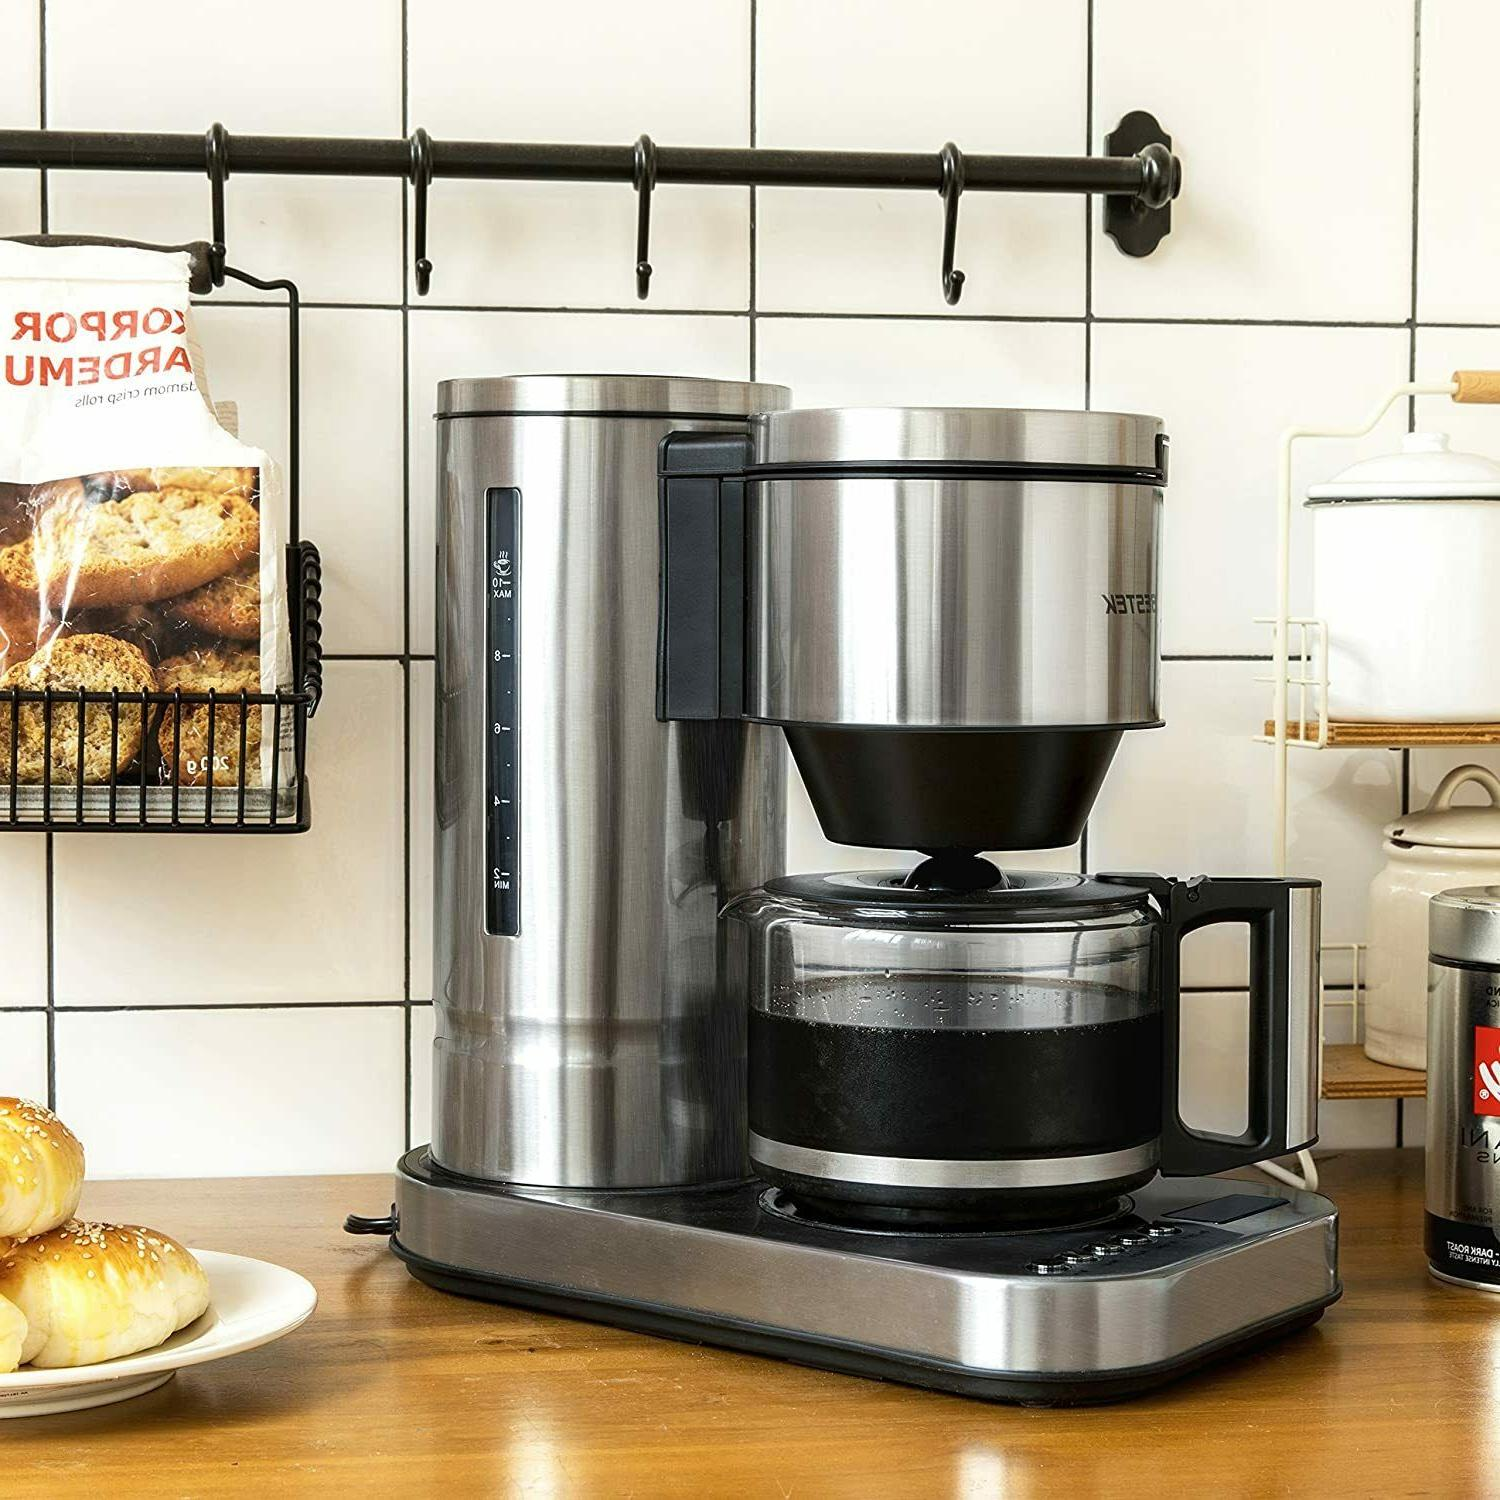 10 cup drip coffee maker in stainless